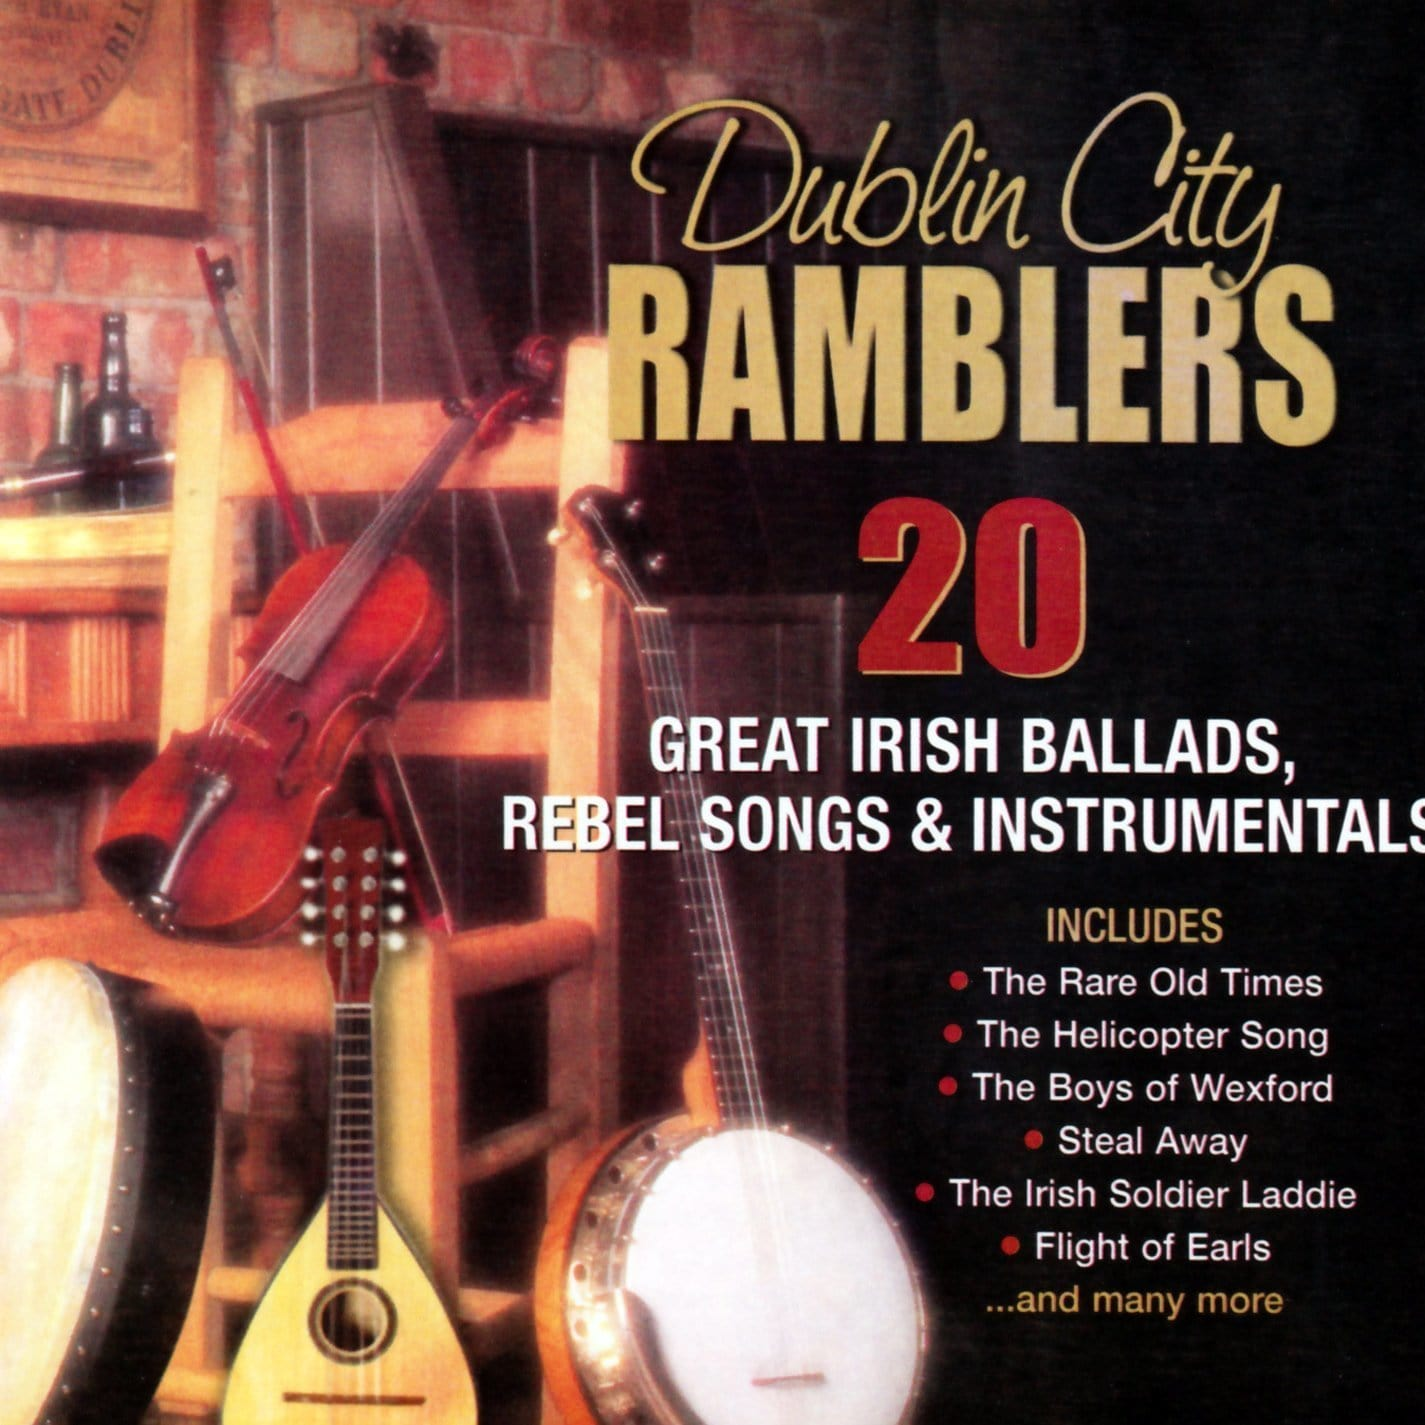 20 Great Irish Ballads, Rebel Songs and Instrumentals: Dublin City Ramblers[CD]